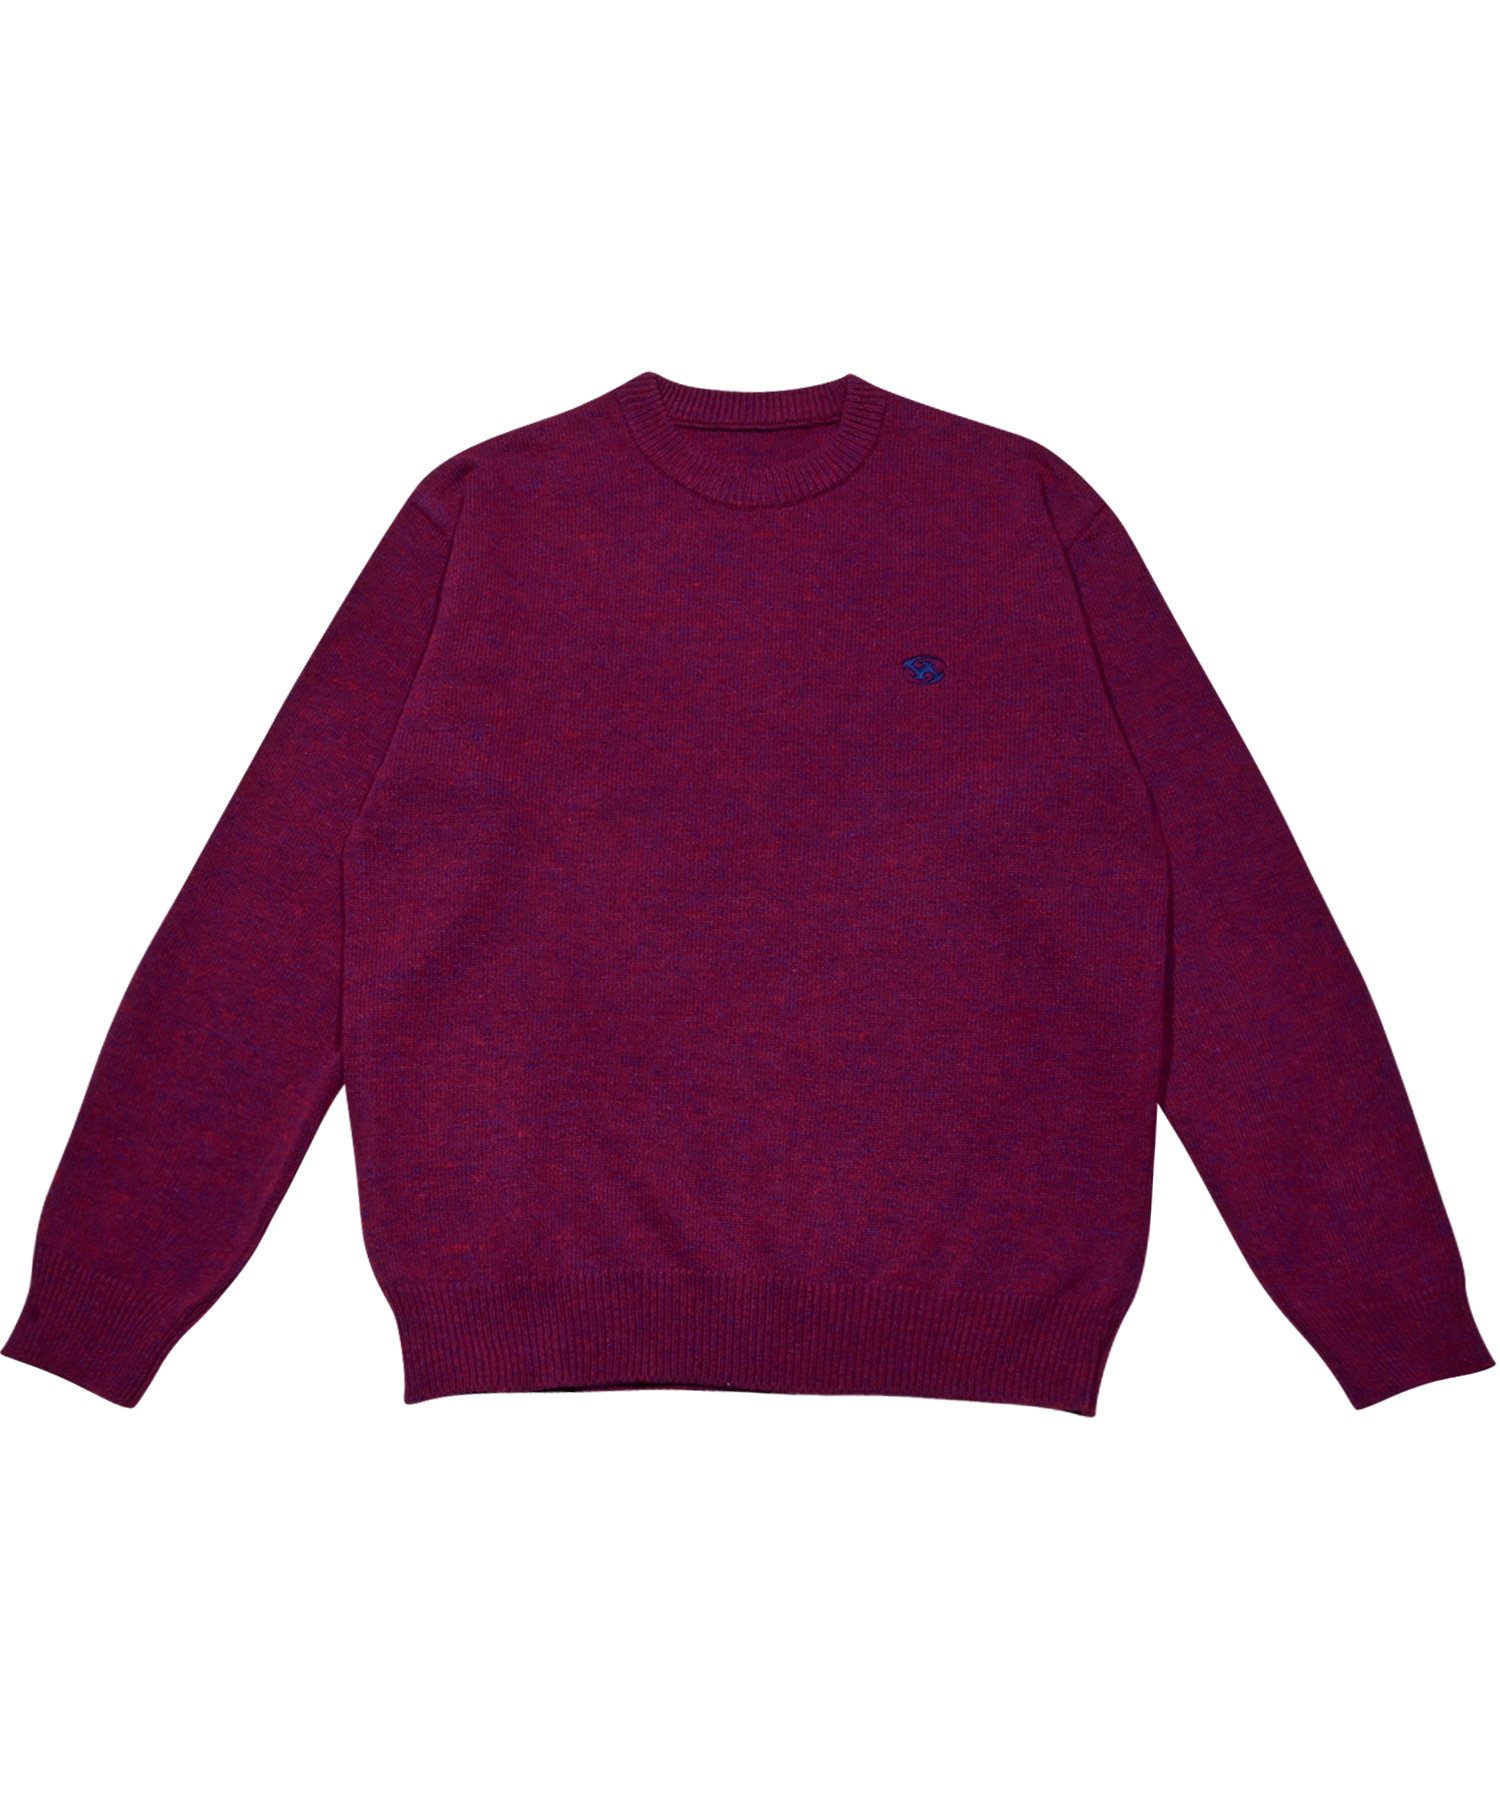 LOGO KNIT PURPLE (be released in Oct.)